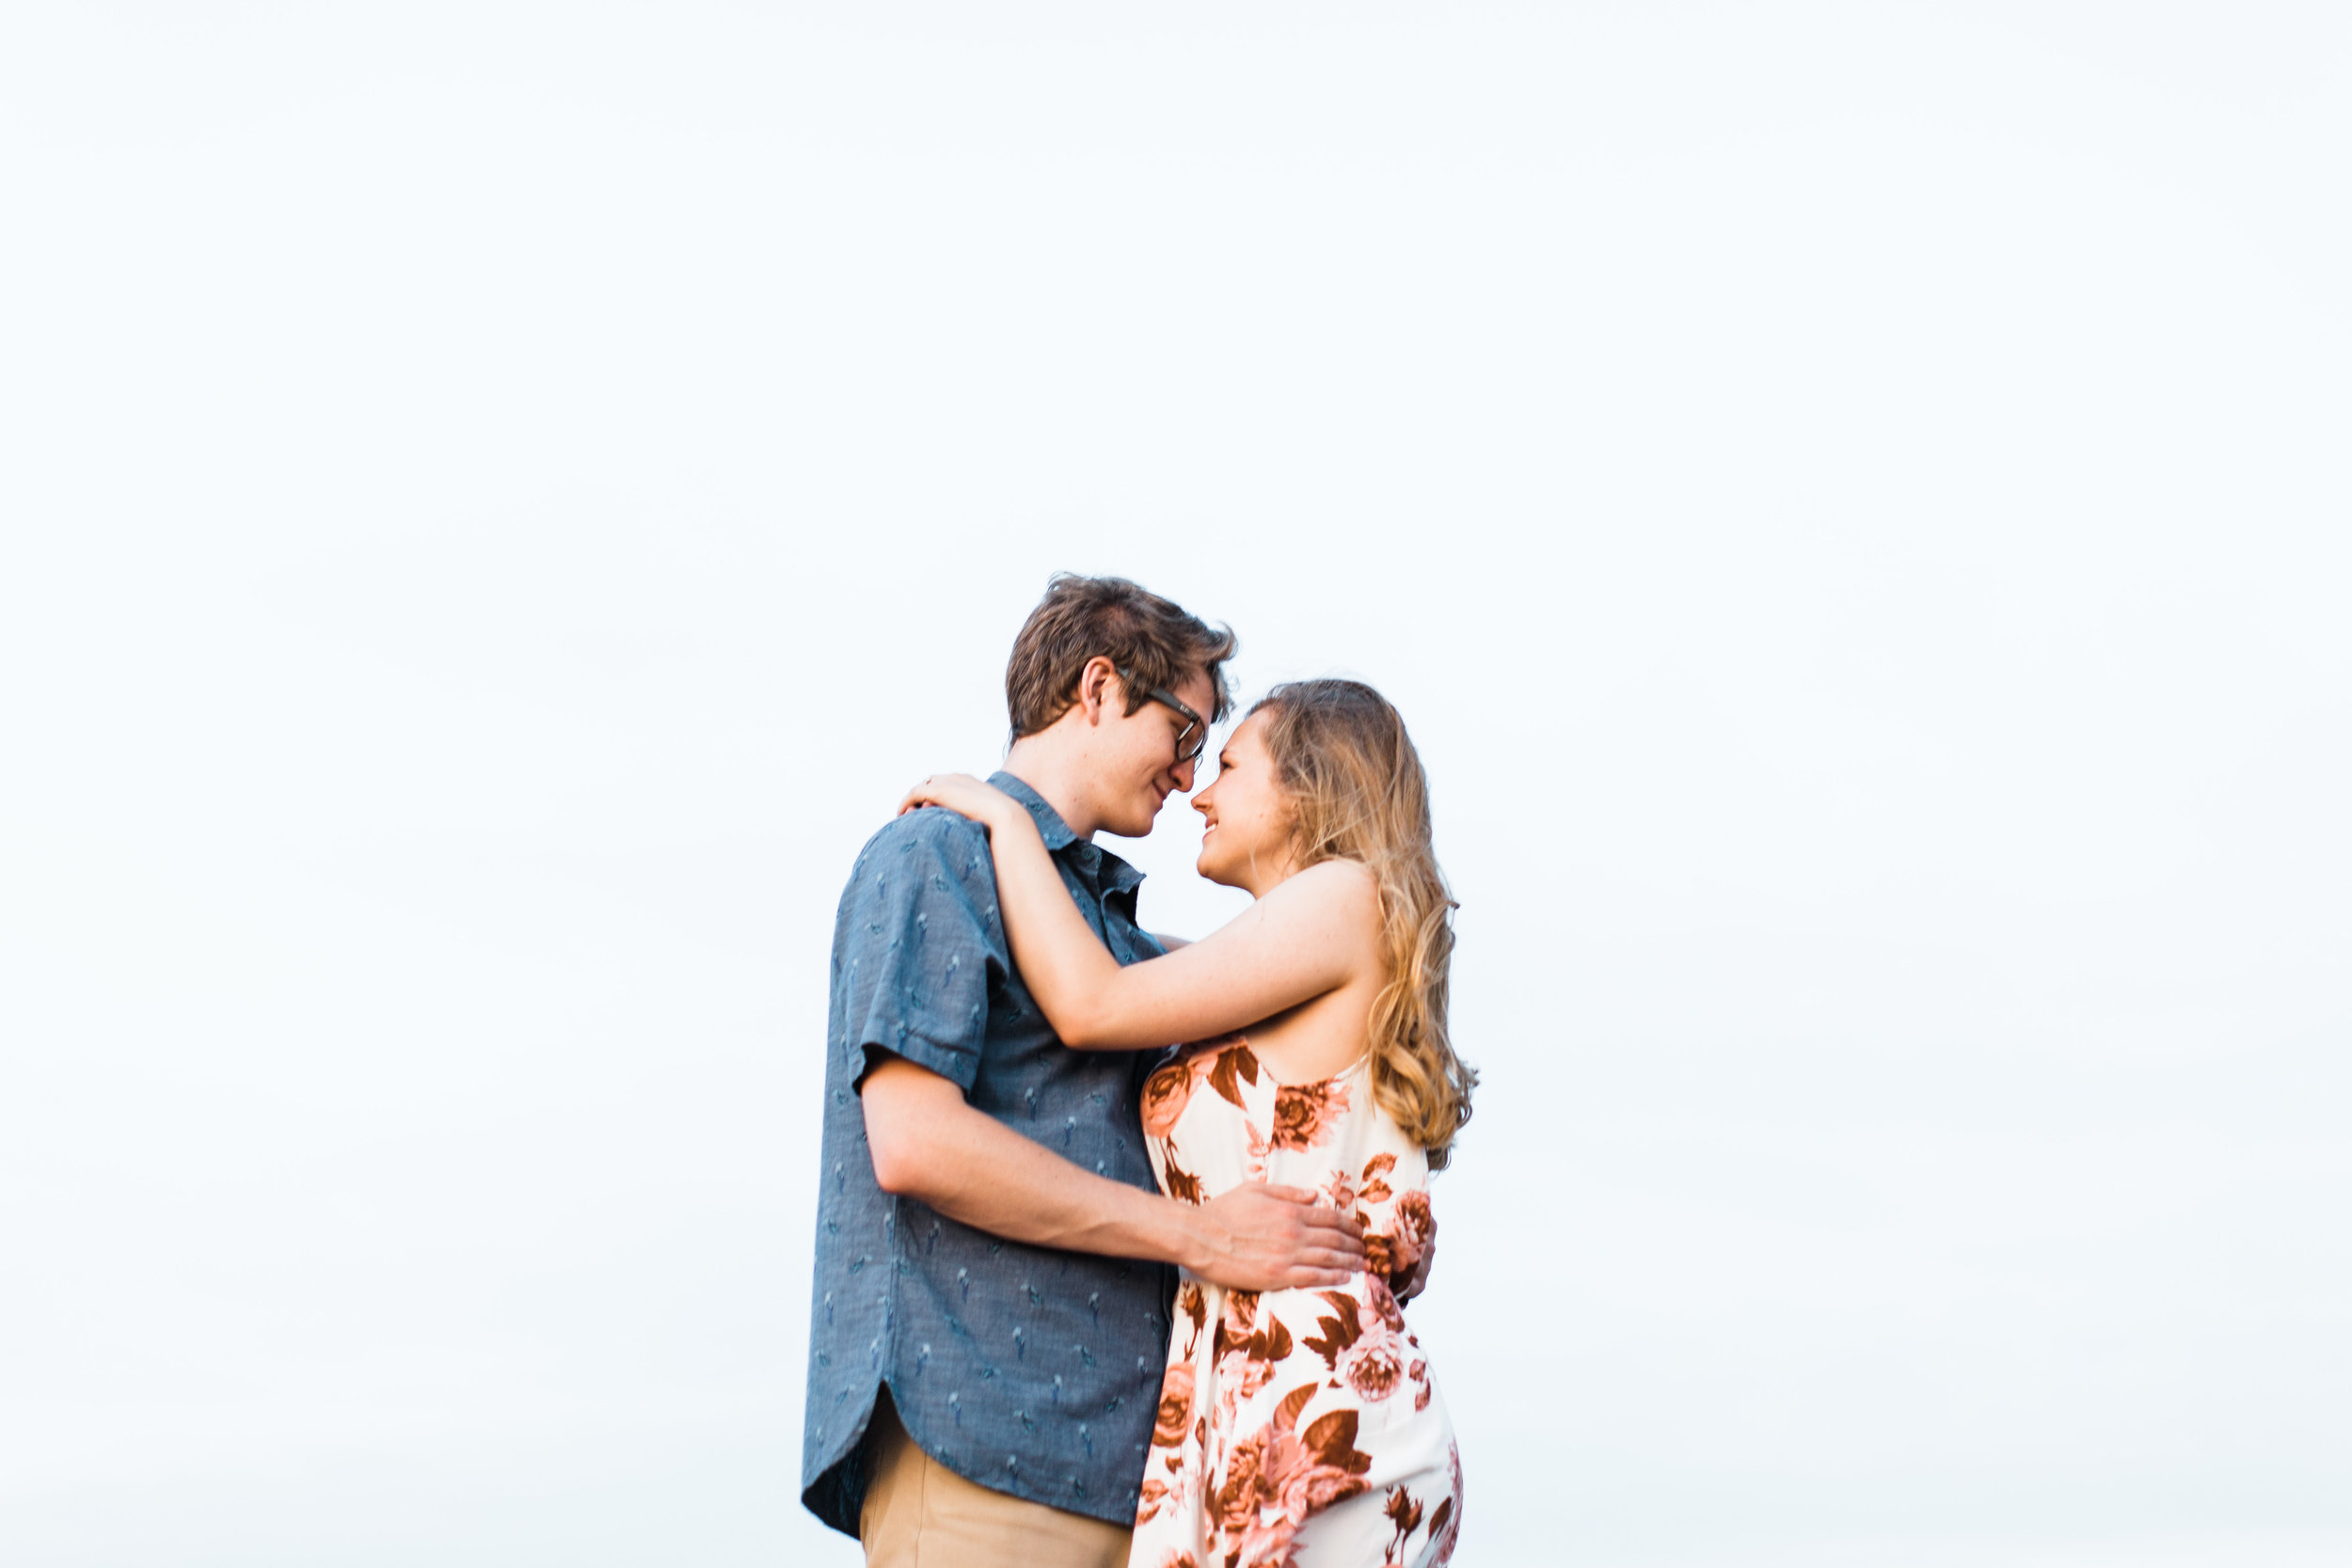 Claire_Michael_CarsynAbramsPhotography (89 of 123).jpg